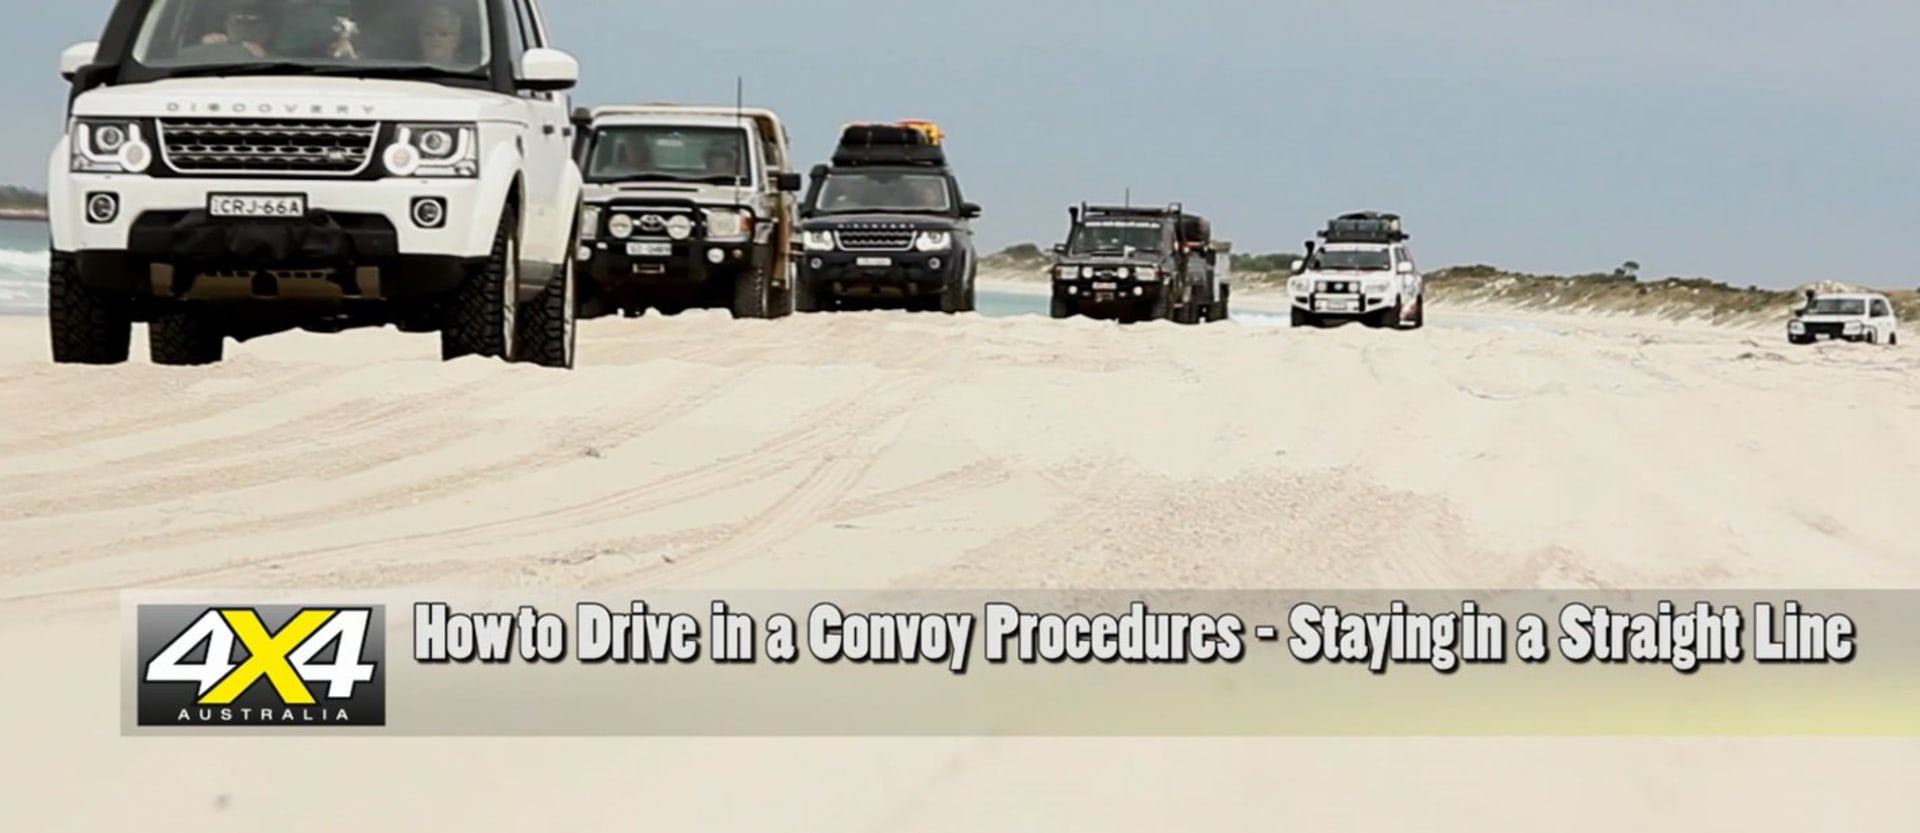 How to 4x4 in a convoy